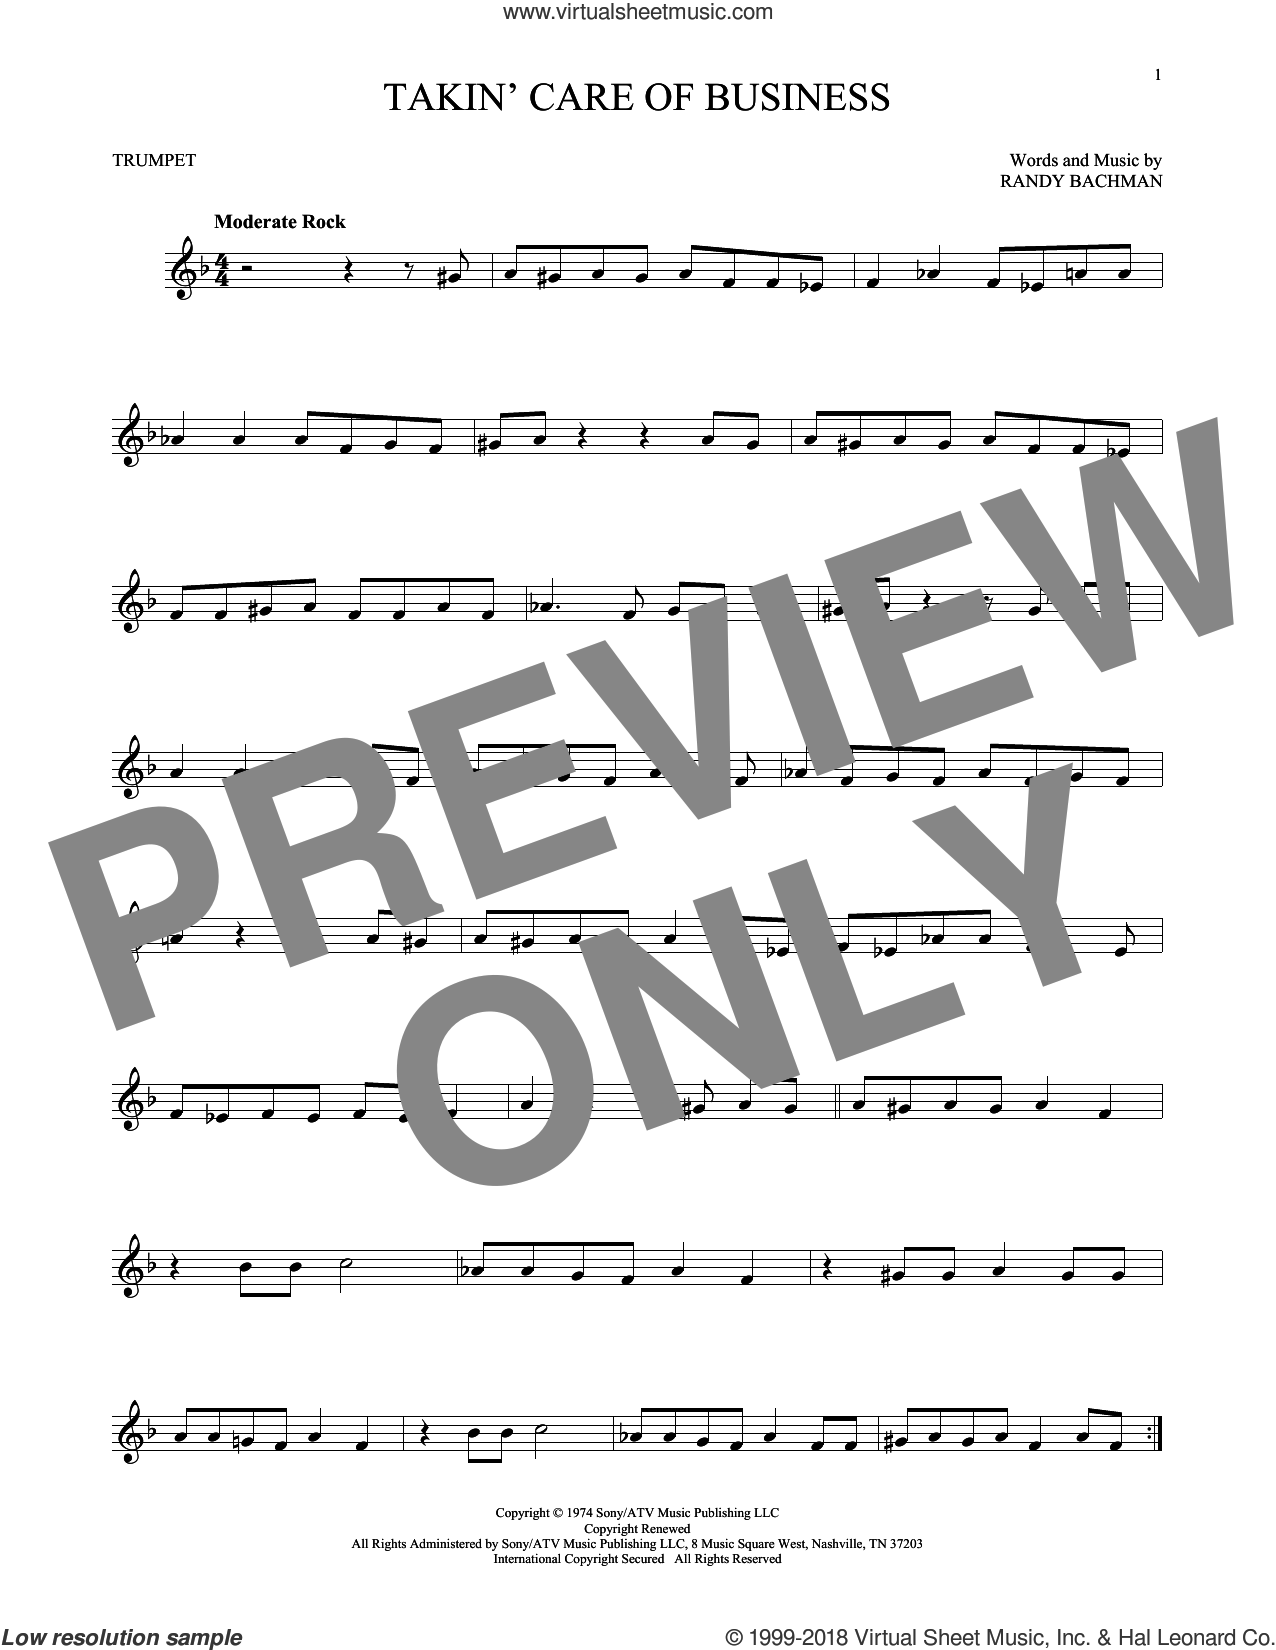 Takin' Care Of Business sheet music for trumpet solo by Randy Bachman. Score Image Preview.